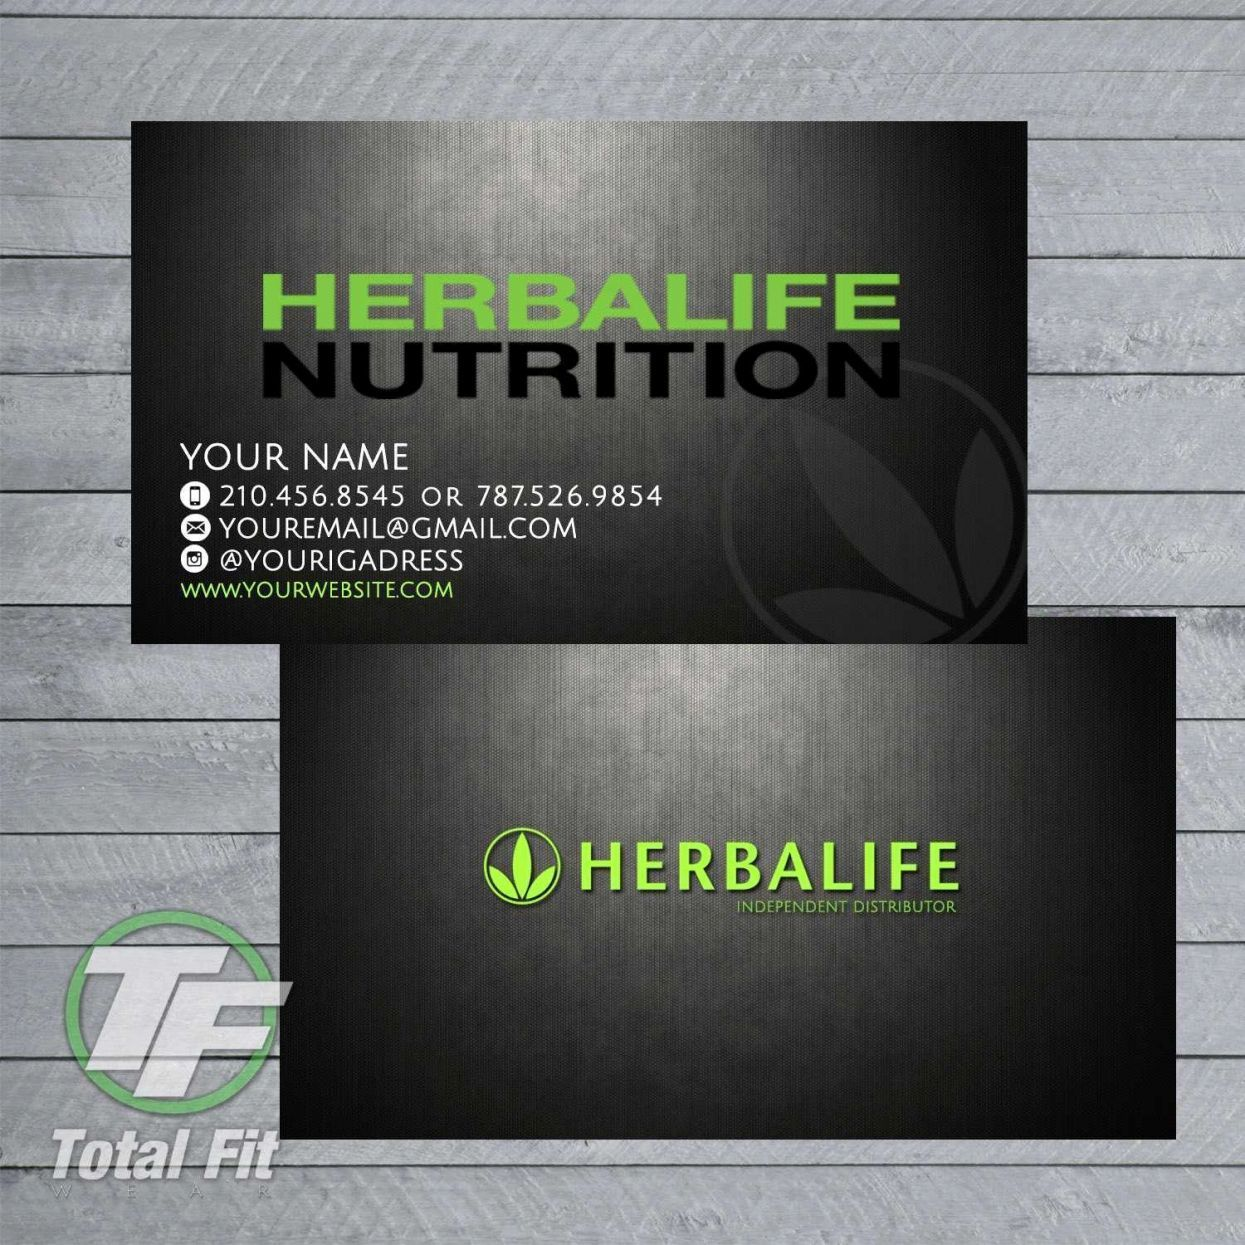 Herbalife Business Card Templates Best Of 24 Elegant Herbalife Business Card Temp Herbalife Business Card Templates Herbalife Business Cards Herbalife Business